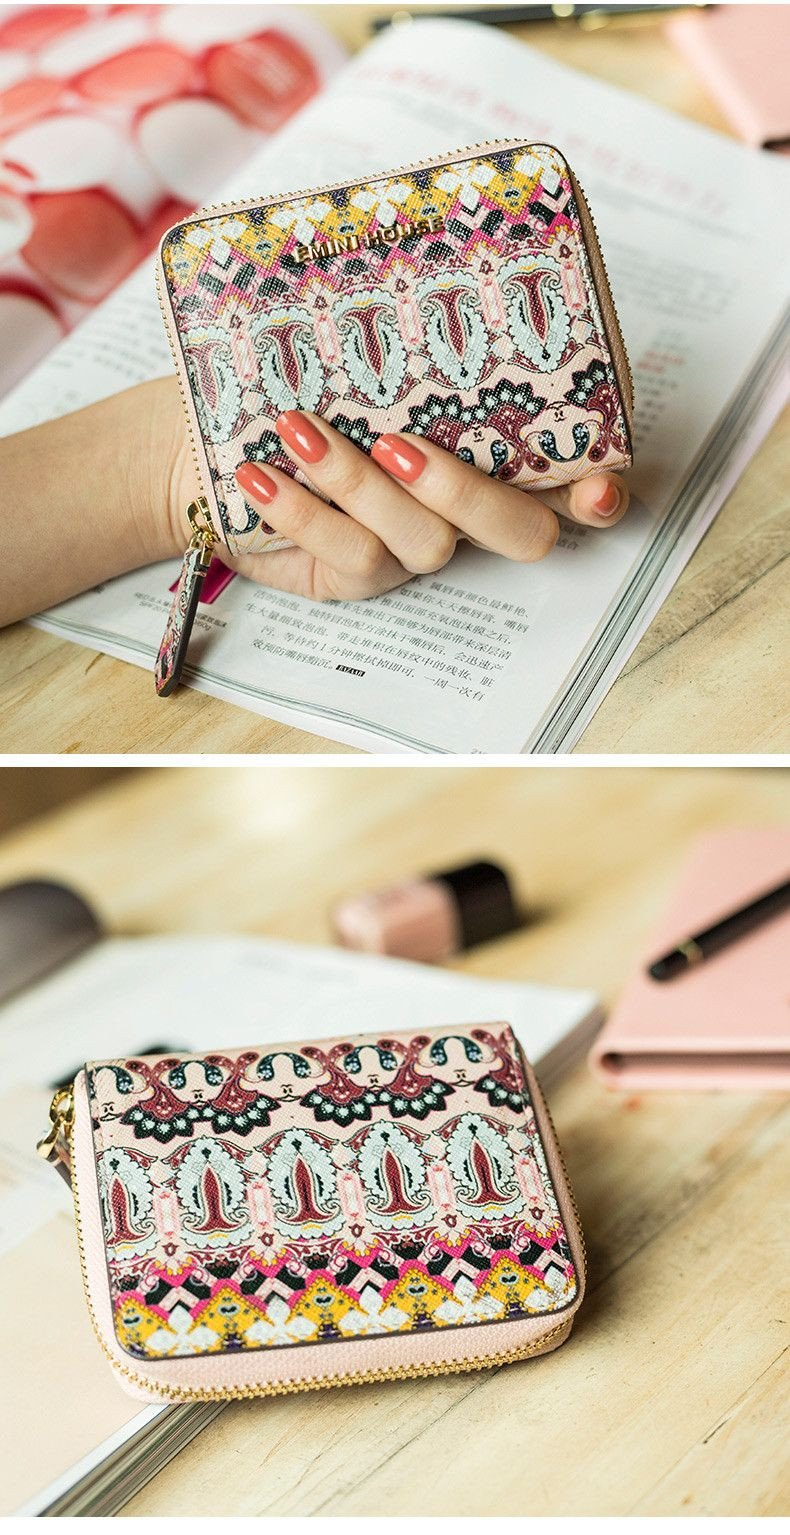 Baroque Short Wallet Split Leather Wallets Pink Color Women Purse Fashion Mini Wallet High Quality Coin Purse-WALLETS-SheSimplyShops